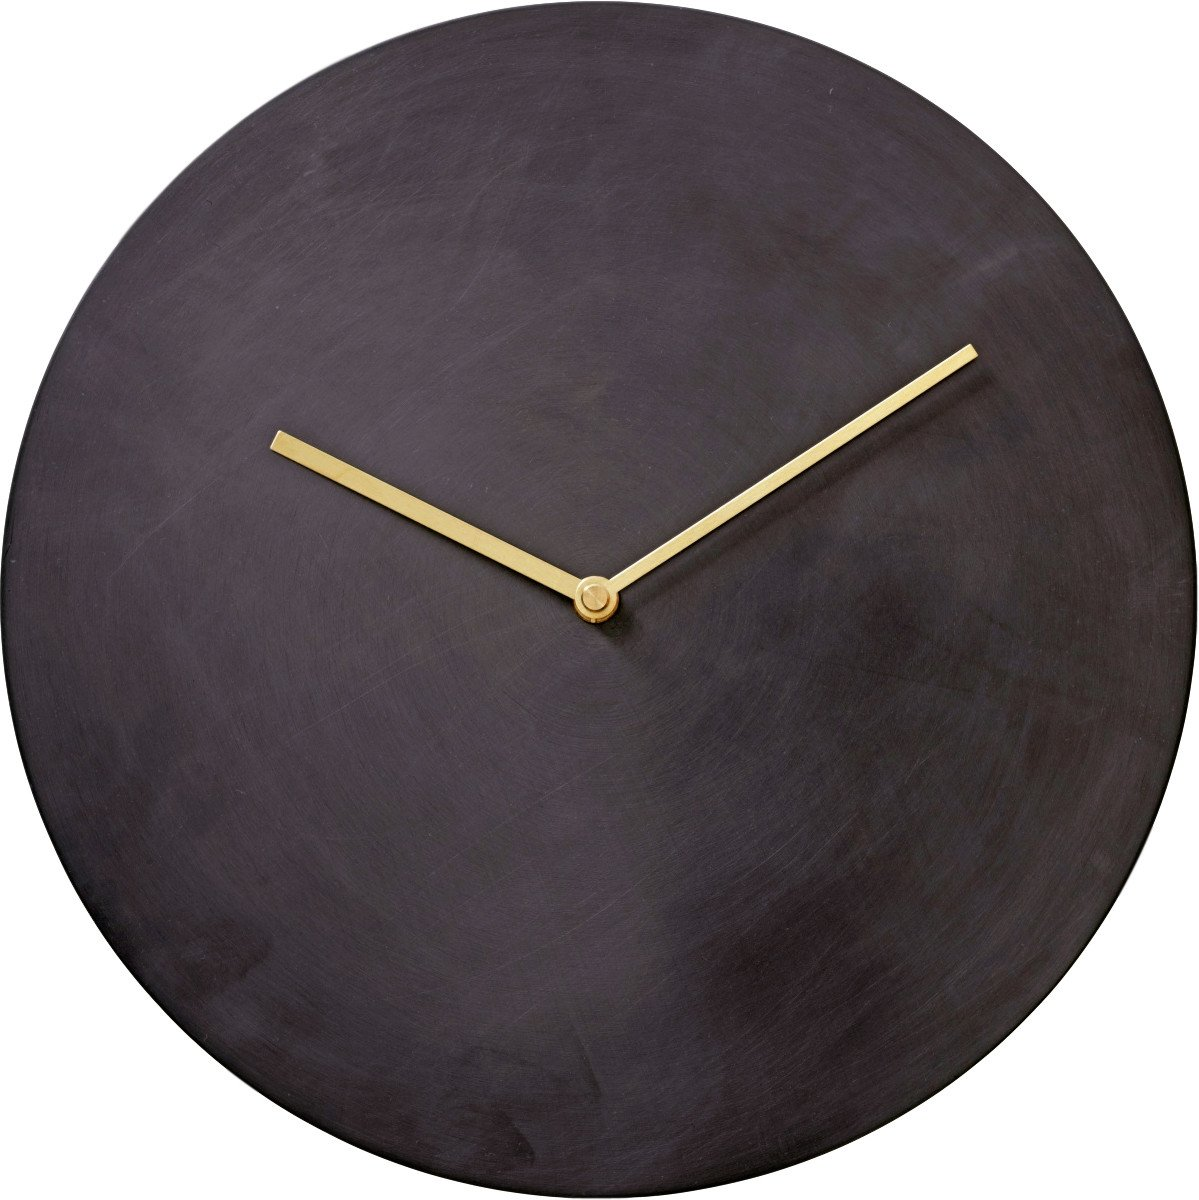 Norm Wall Clock Bronzed Brass by Norm Architects, Menu